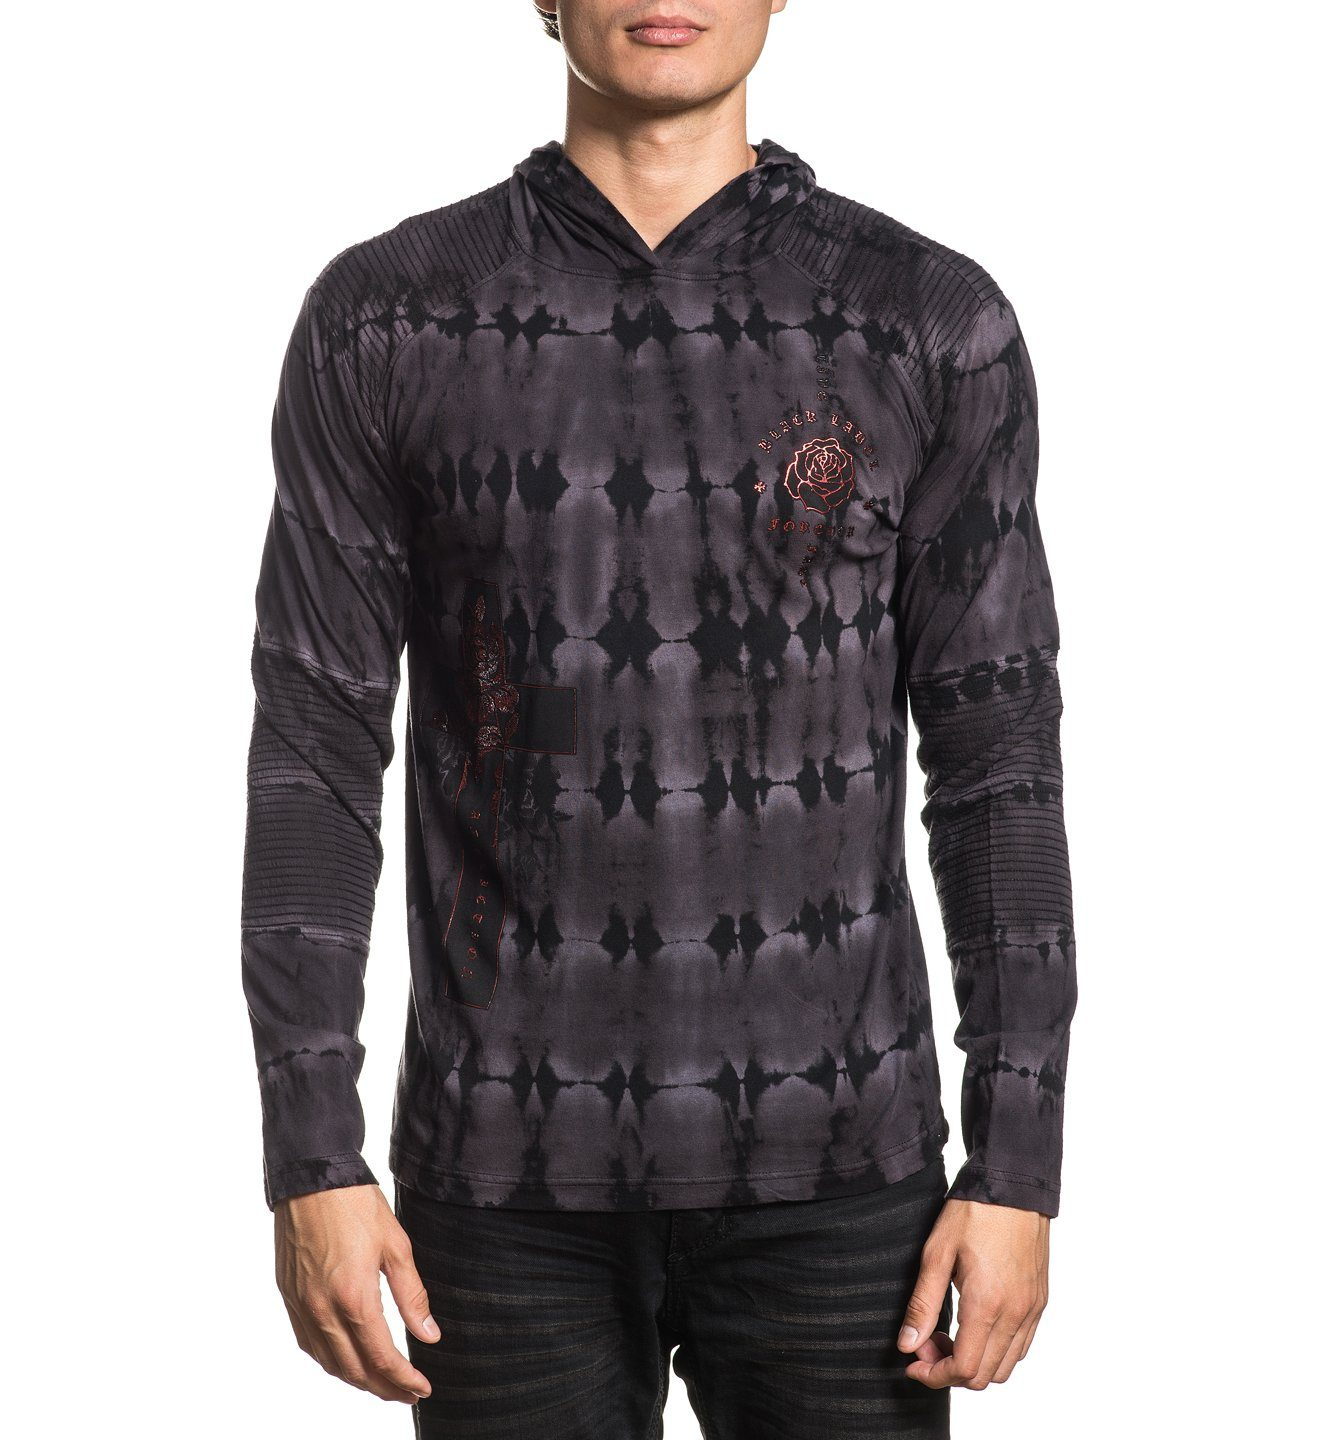 Cross Of Souls - Mens Hooded Sweatshirts - Affliction Clothing